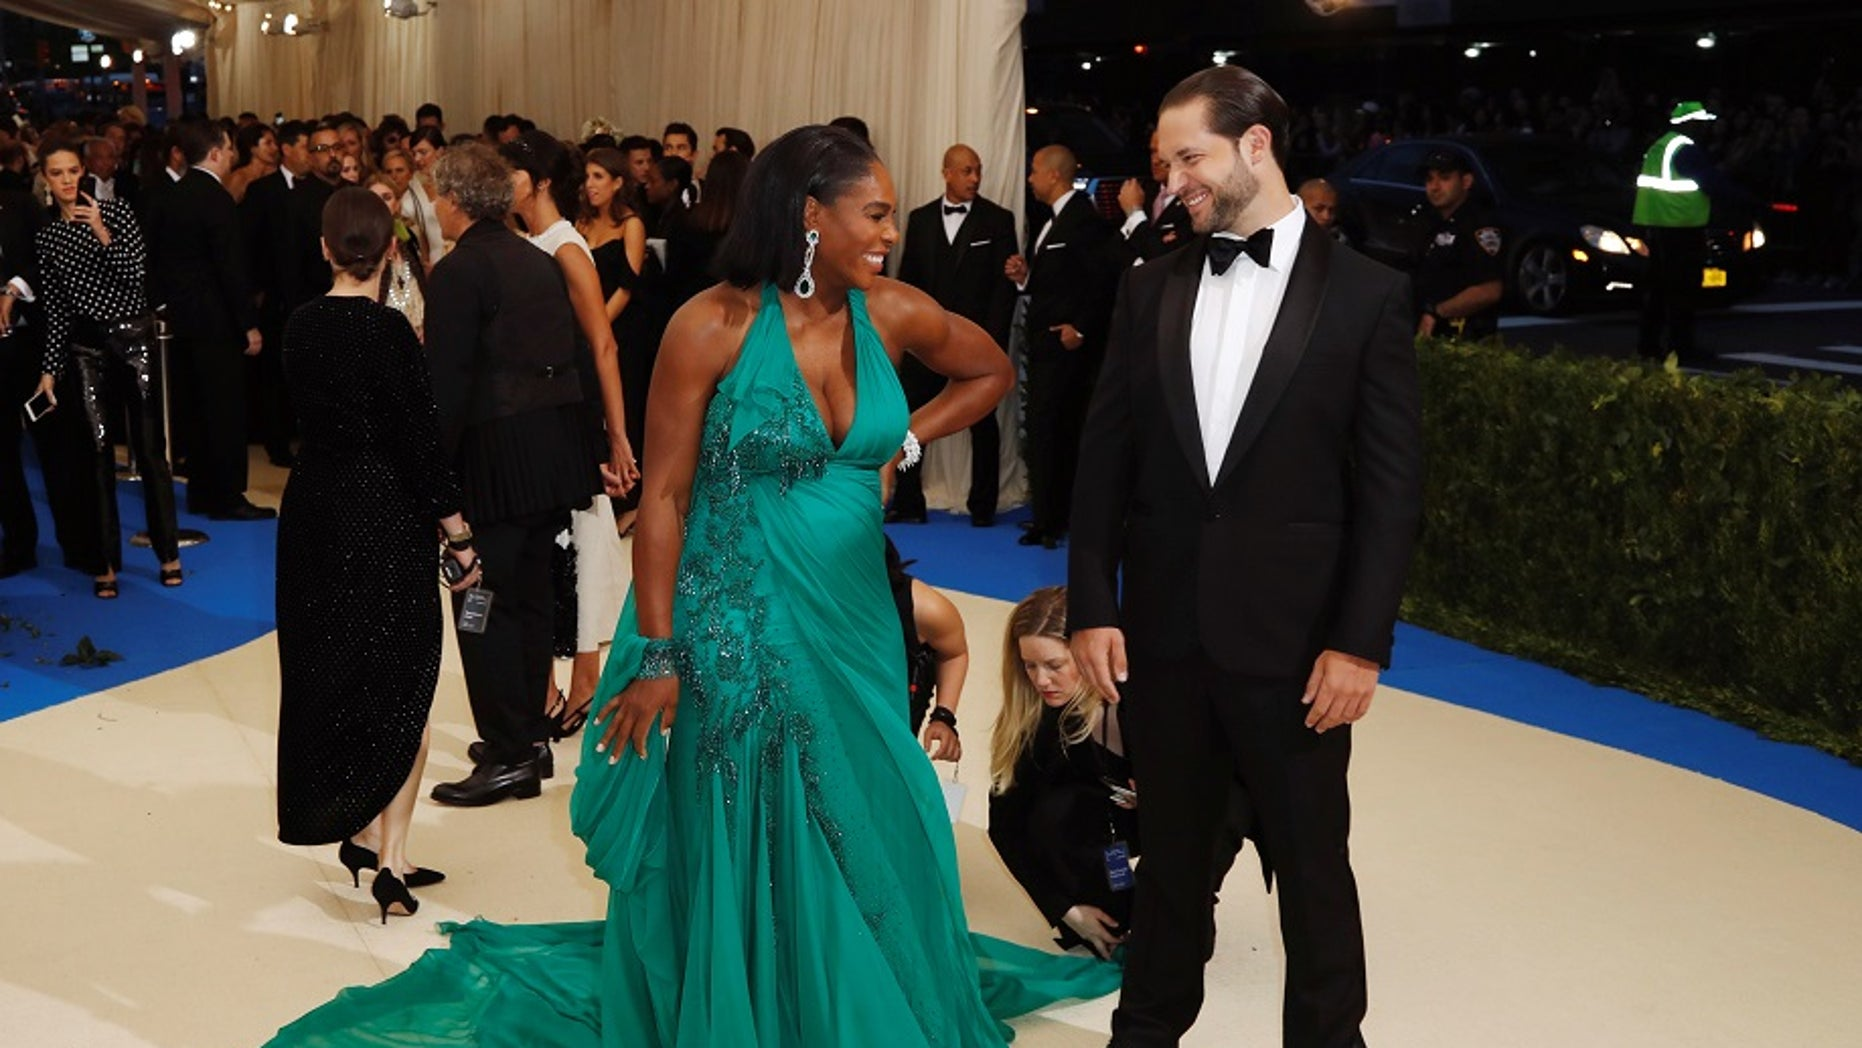 Serena Williams will reportedly marry her fiance Alexis Ohanian this week.